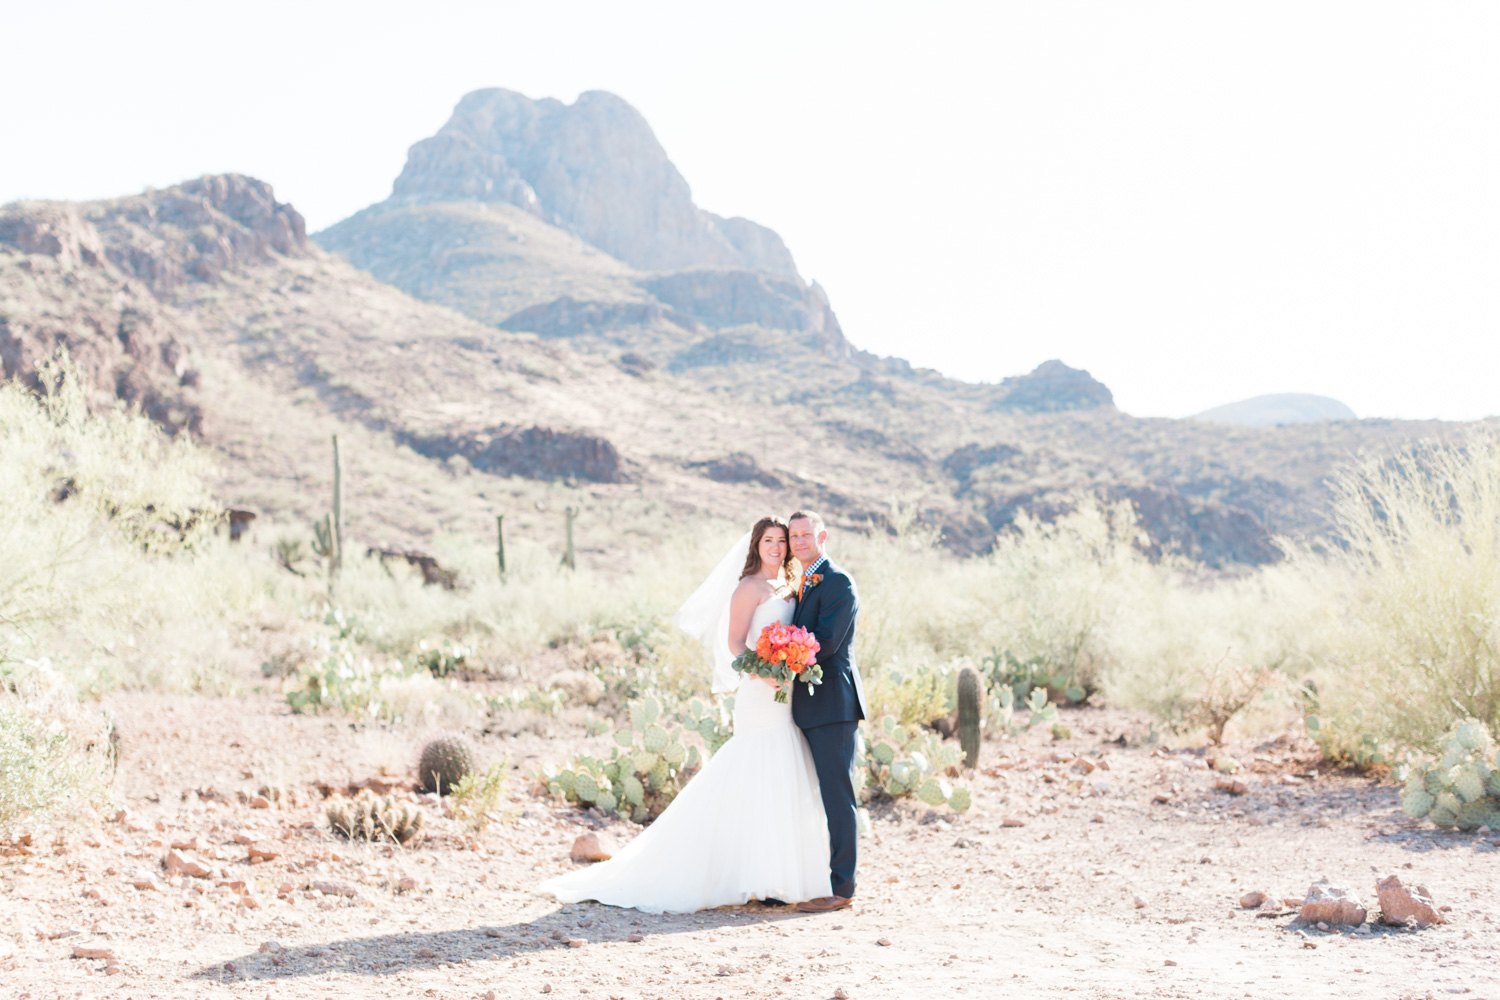 Bride and groom standing in a gorgeous desert setting. Love those stunning mountain views an the cactus in the background! Perfect desert wedding venue.